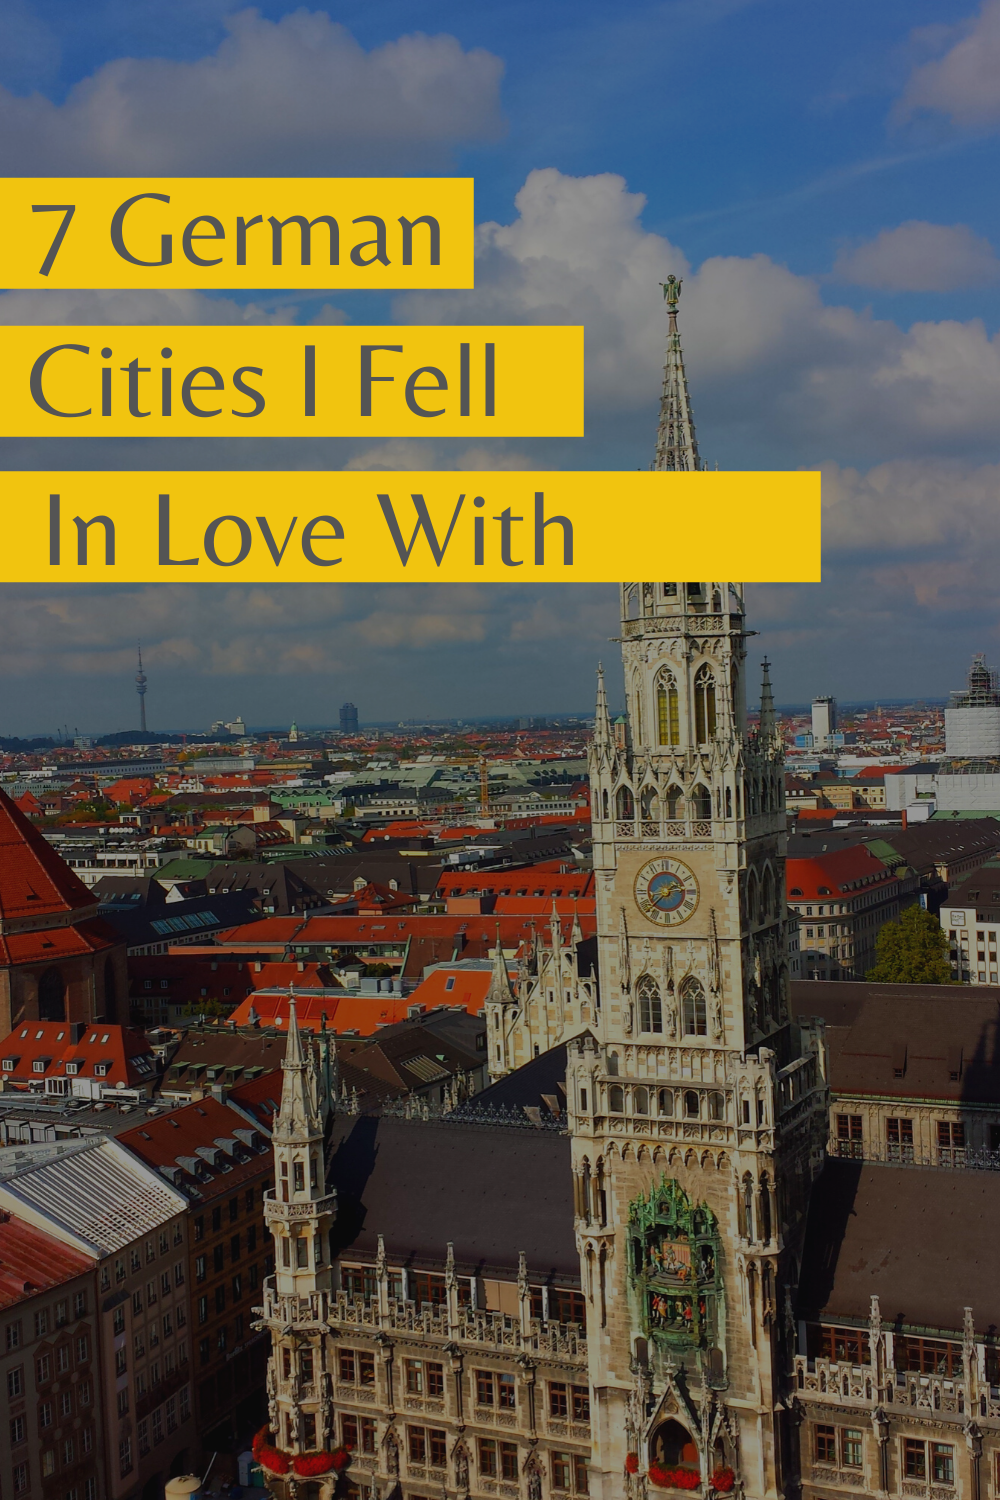 7 German Cities I Fell in Love With